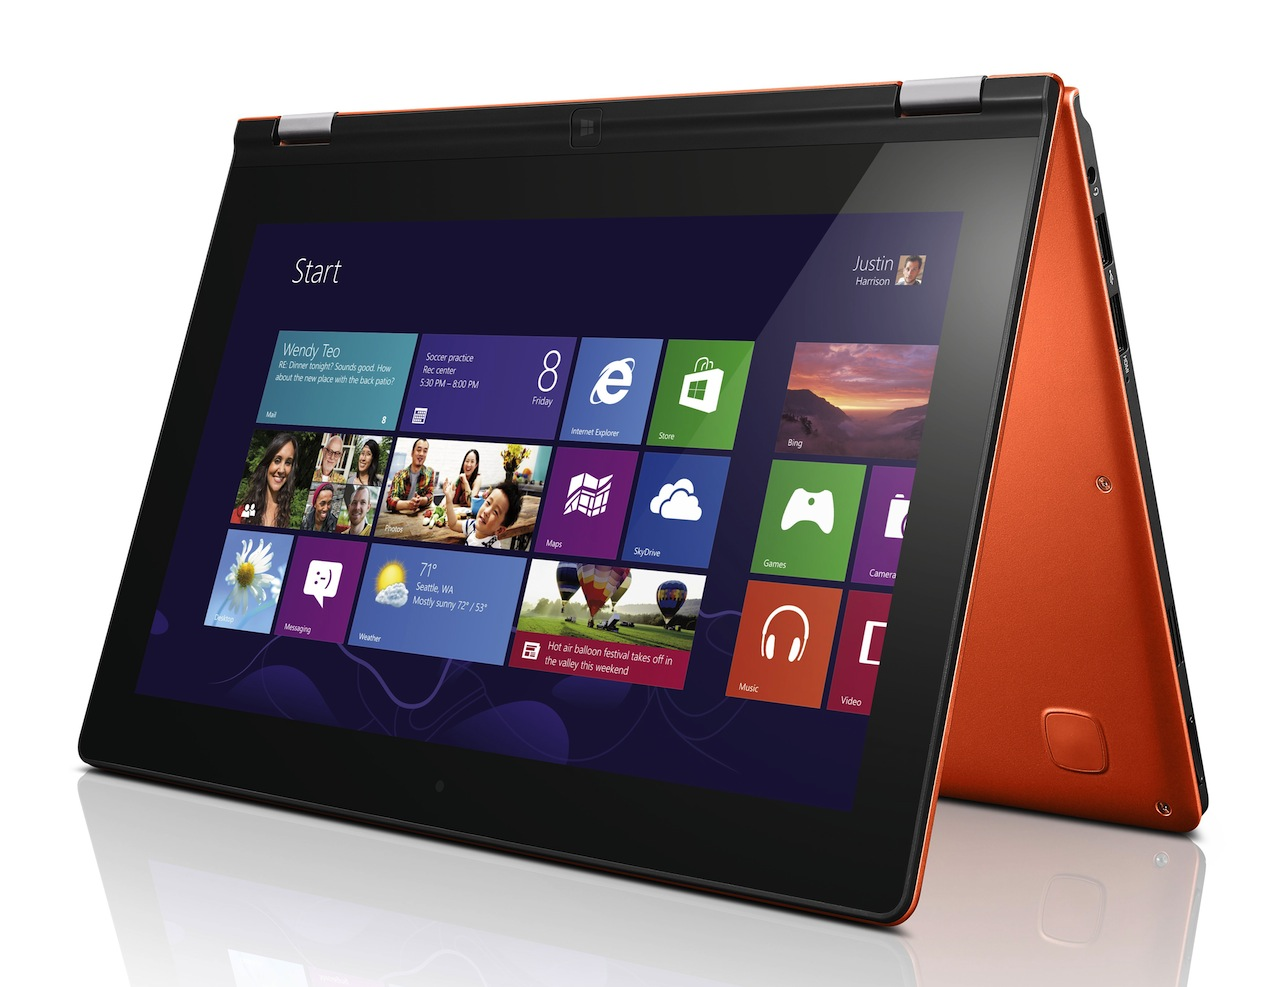 The ARM-based IdeaPad Yoga 11 is .61 inches (15.6mm) thick and weighs 2.8 pounds (1.27kg).